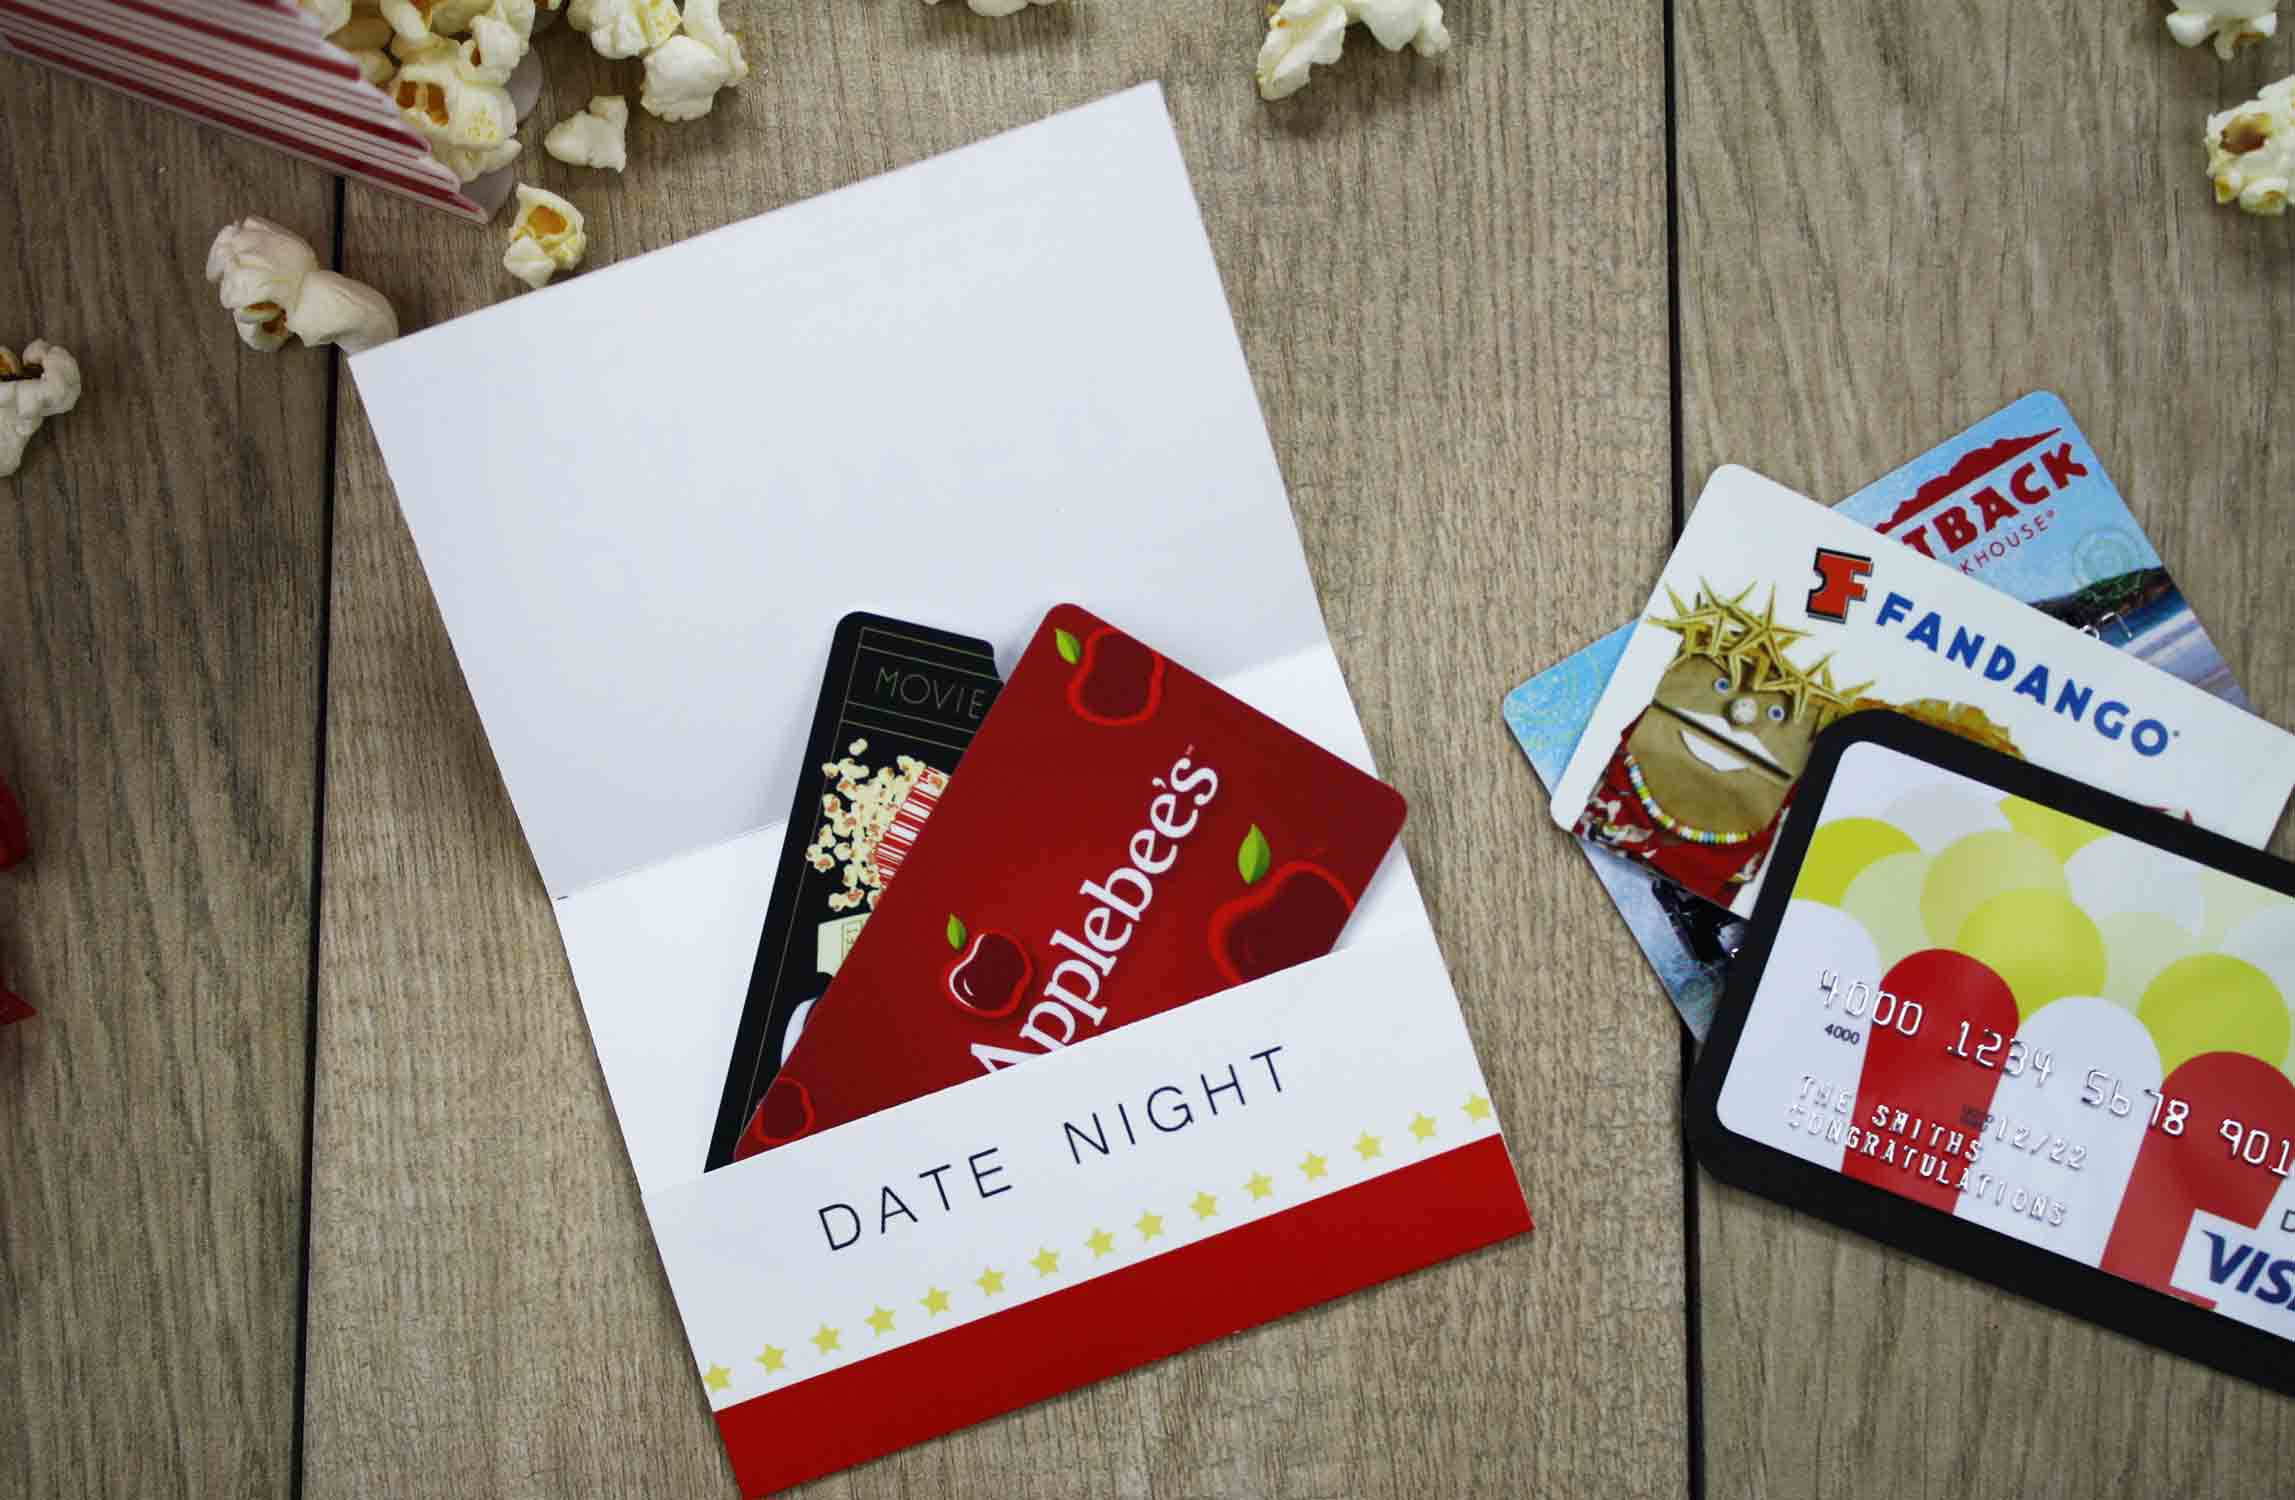 free printable give date night for a wedding t